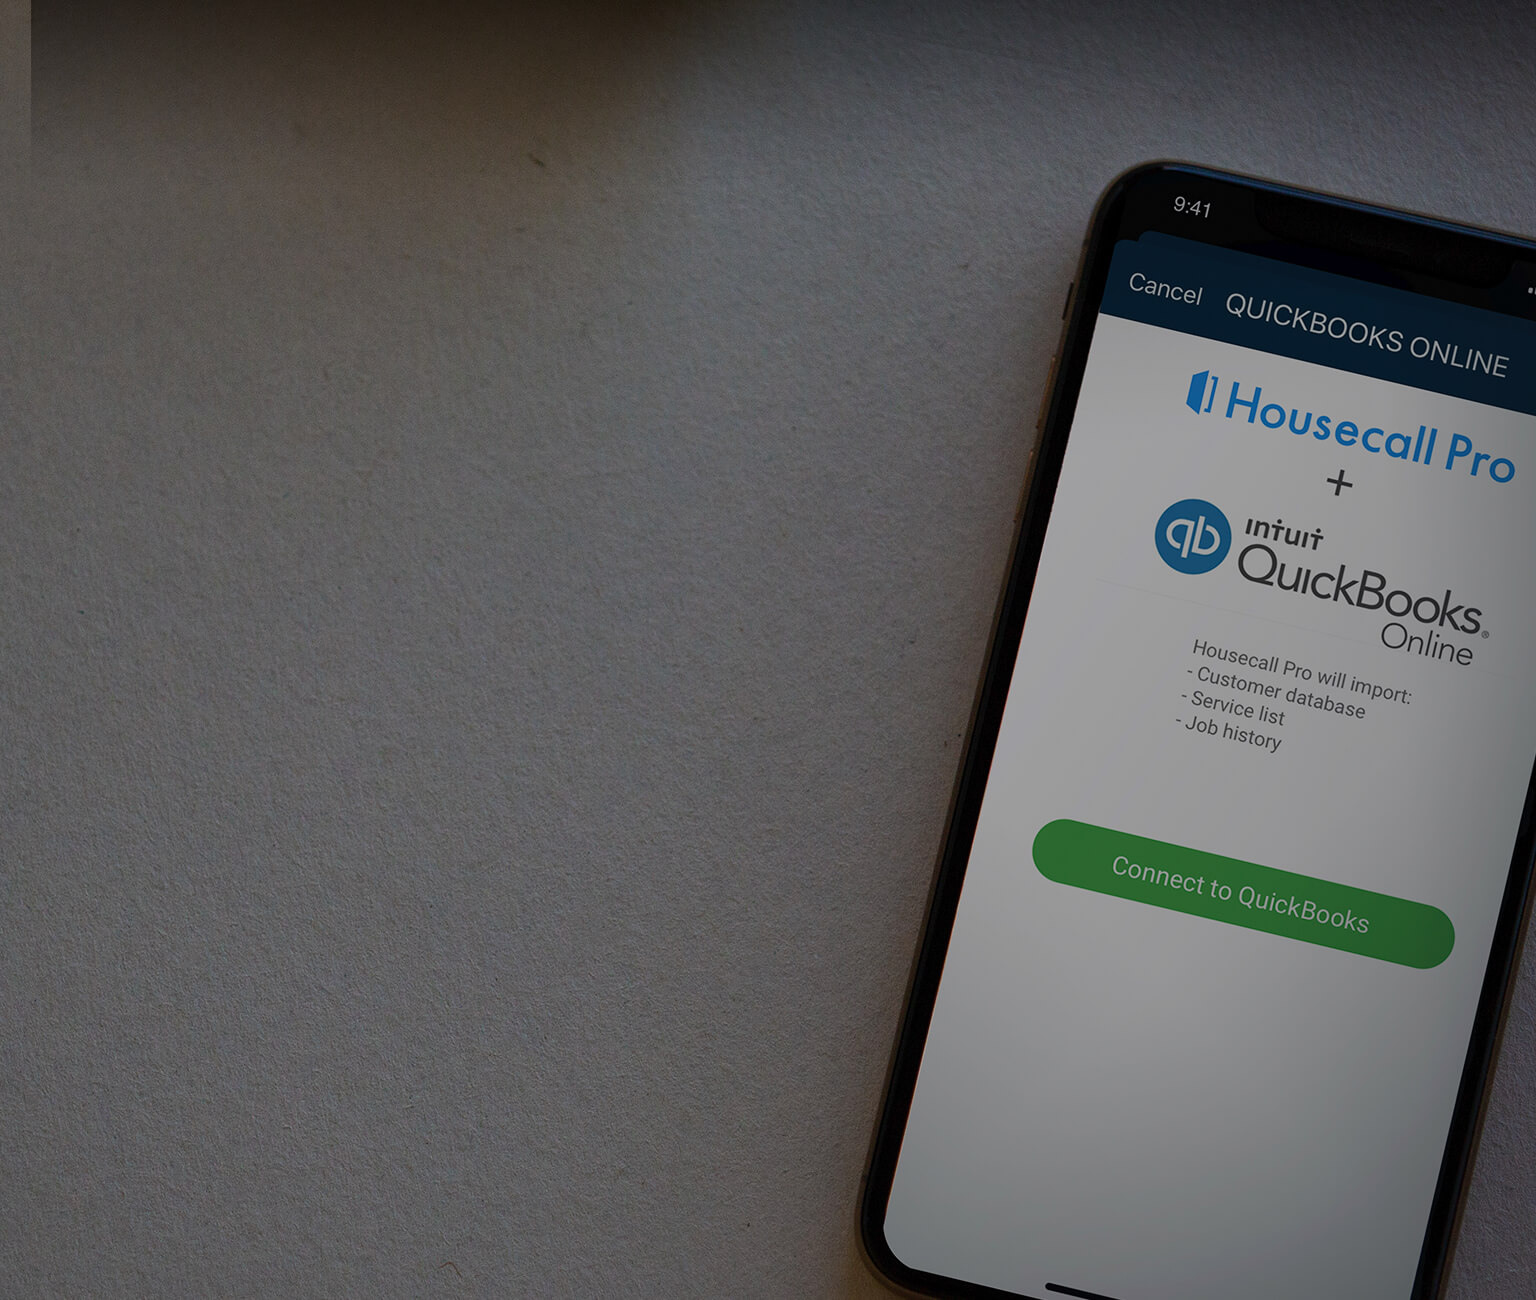 Housecall Pro's software for quickbooks on an iPhone 11